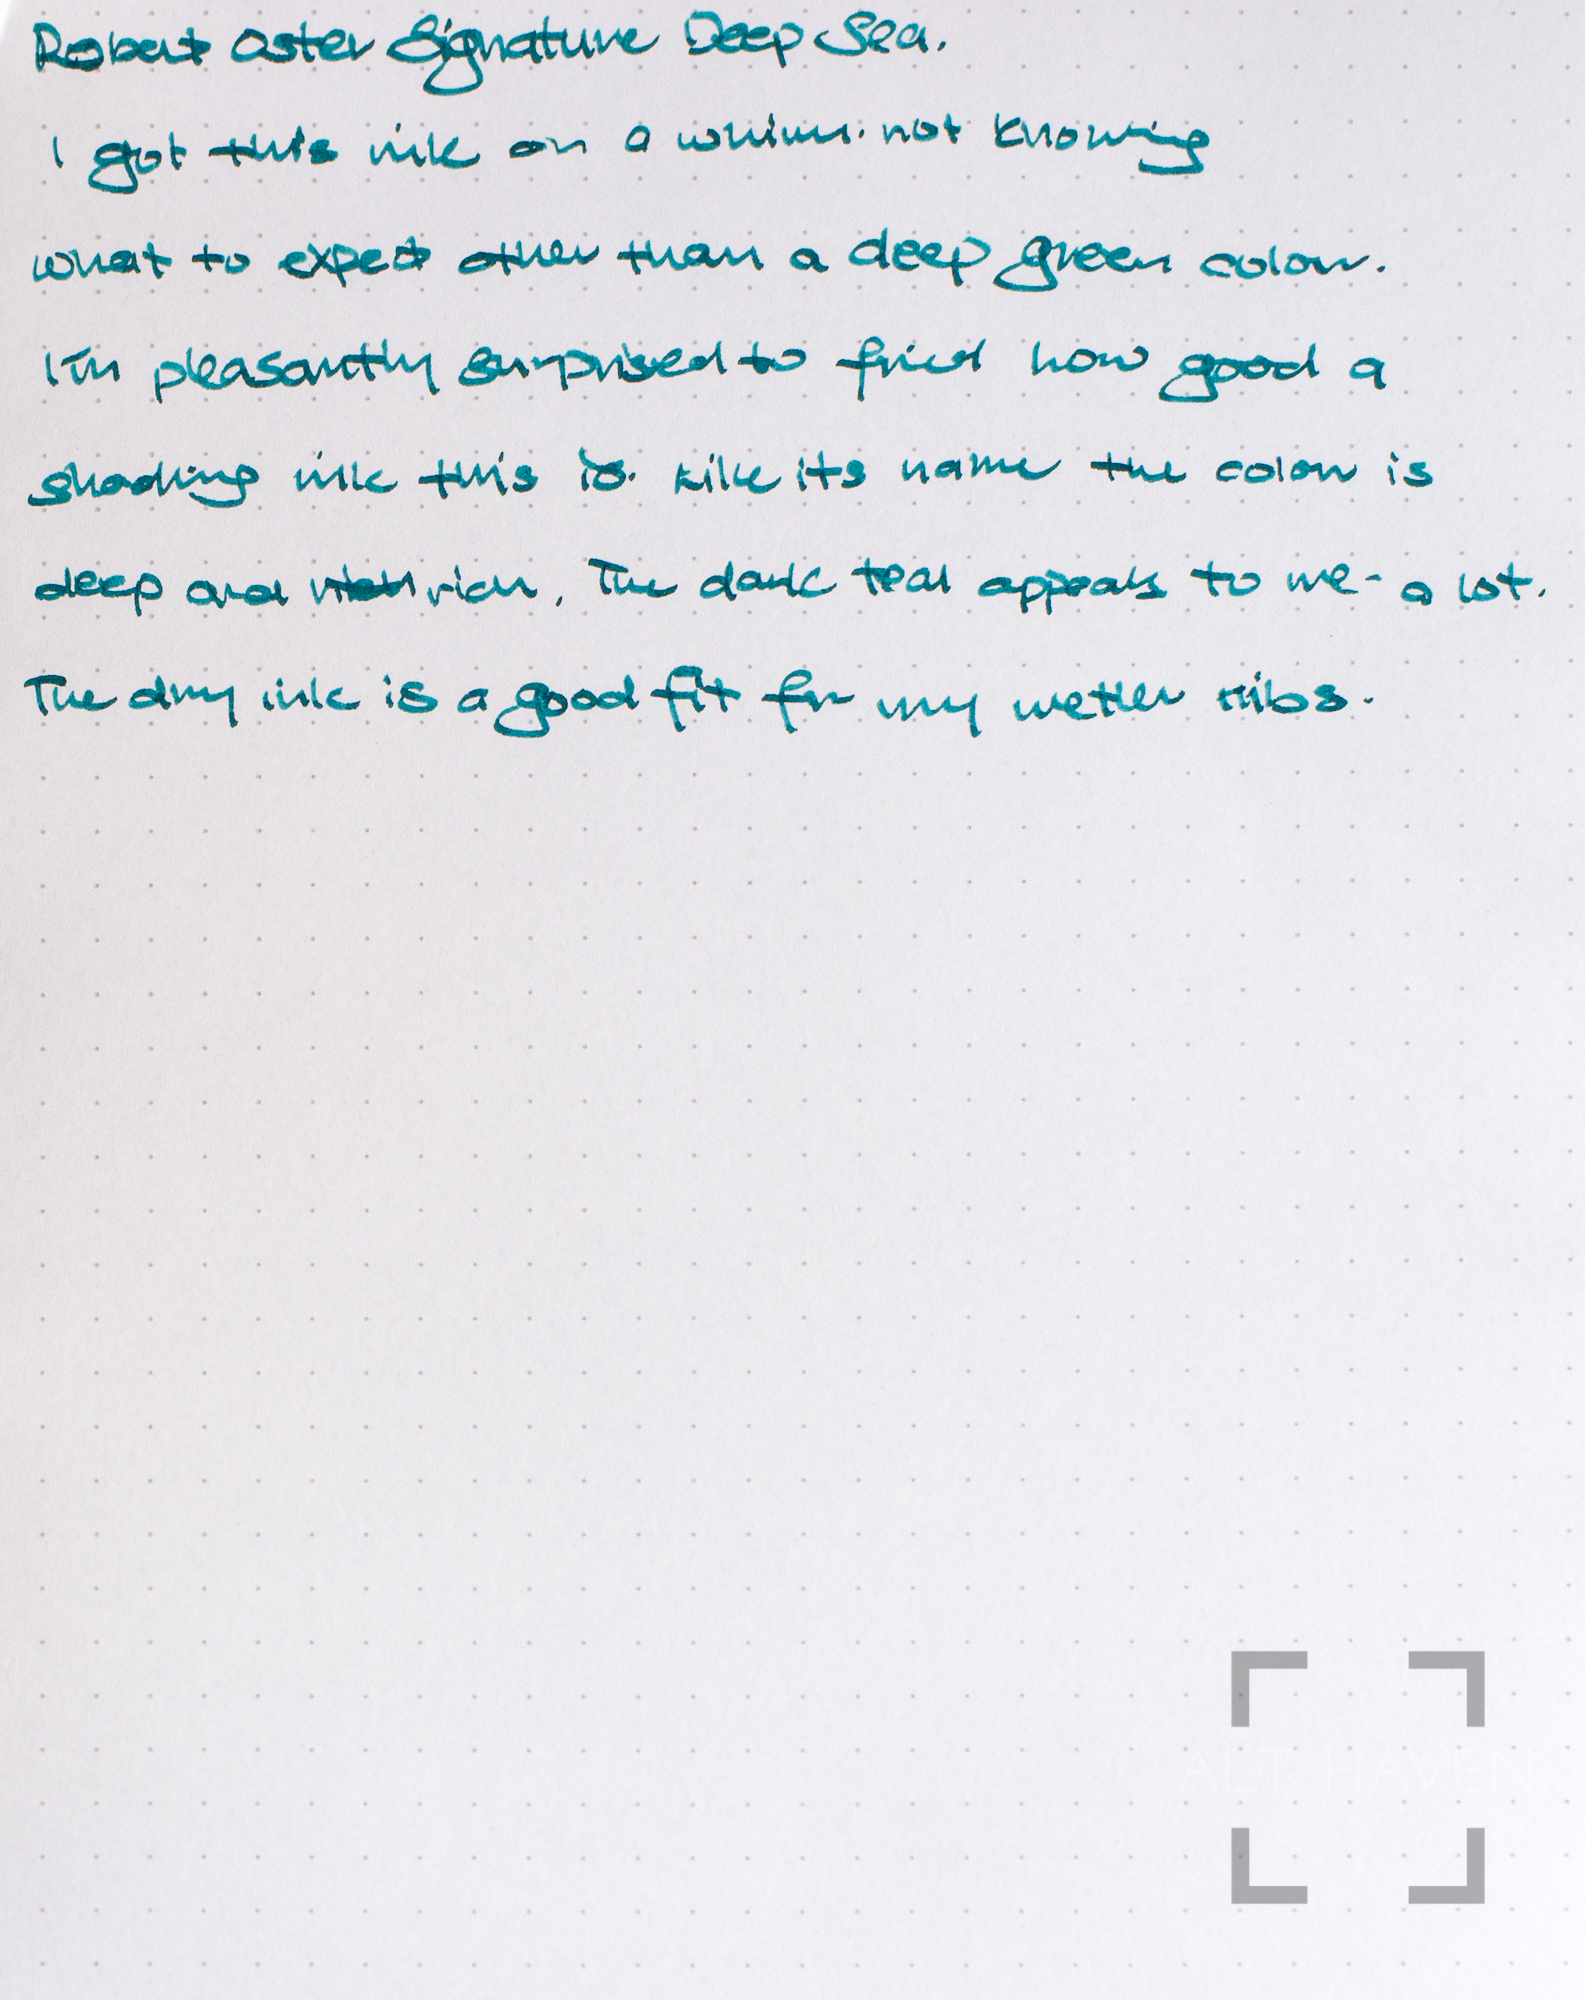 Robert Oster Deep Sea-2.jpg